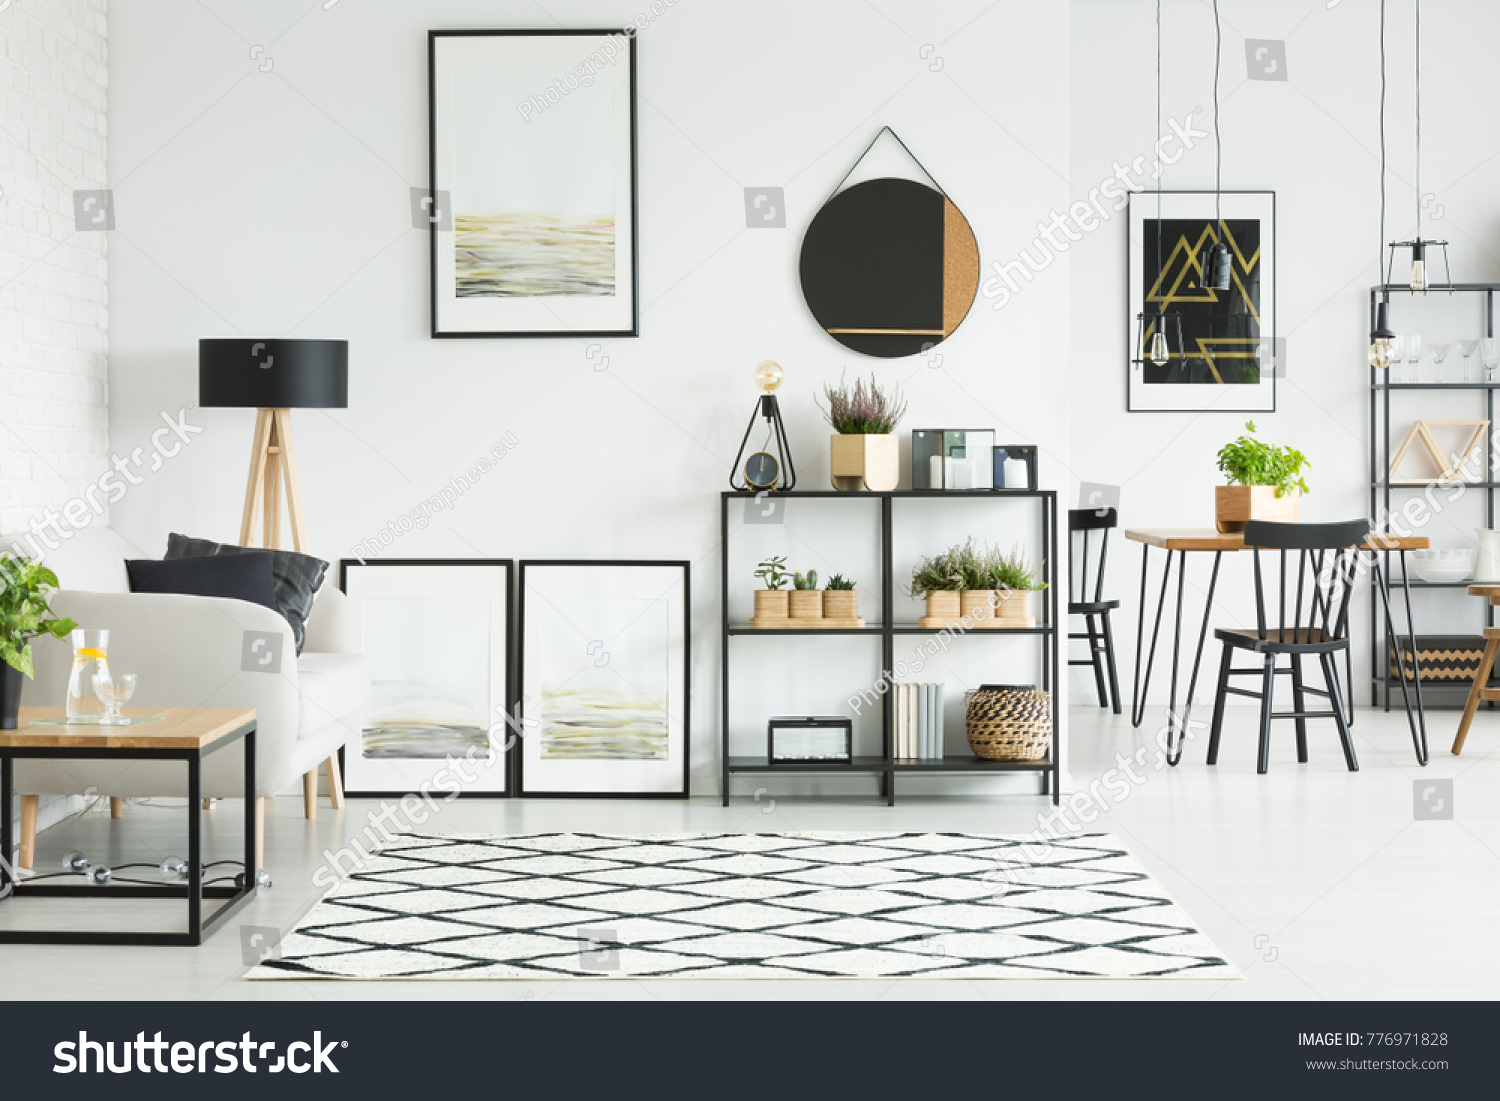 Patterned Carpet On Floor Mirror Paintings Stock Photo (Royalty Free ...